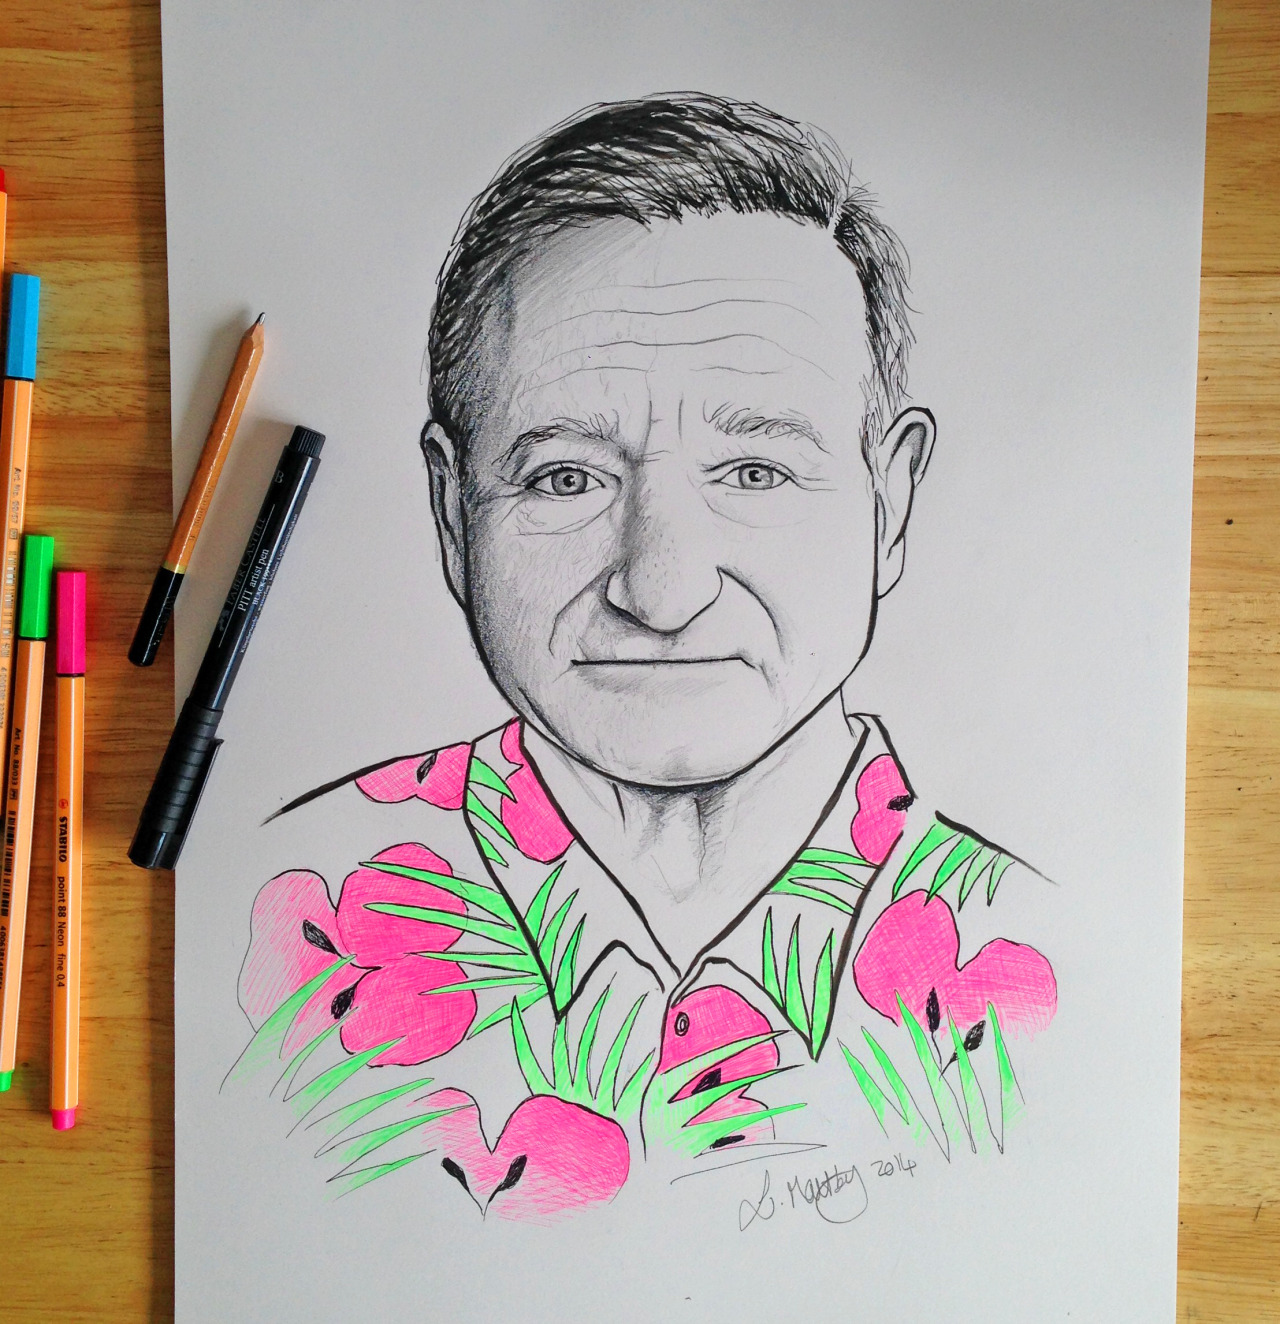 My tribute to Robin Williams, such a great comic and actor. I am auctioning this original, signed drawing of Robin Williams to raise money for MIND mental health charity. STARTING BID AT JUST 99p! Please bid generously to raise money for this great charity and to raise awareness of mental health issues which affects 1 in 3 of us.  Please share! PLEASE BID HERE!